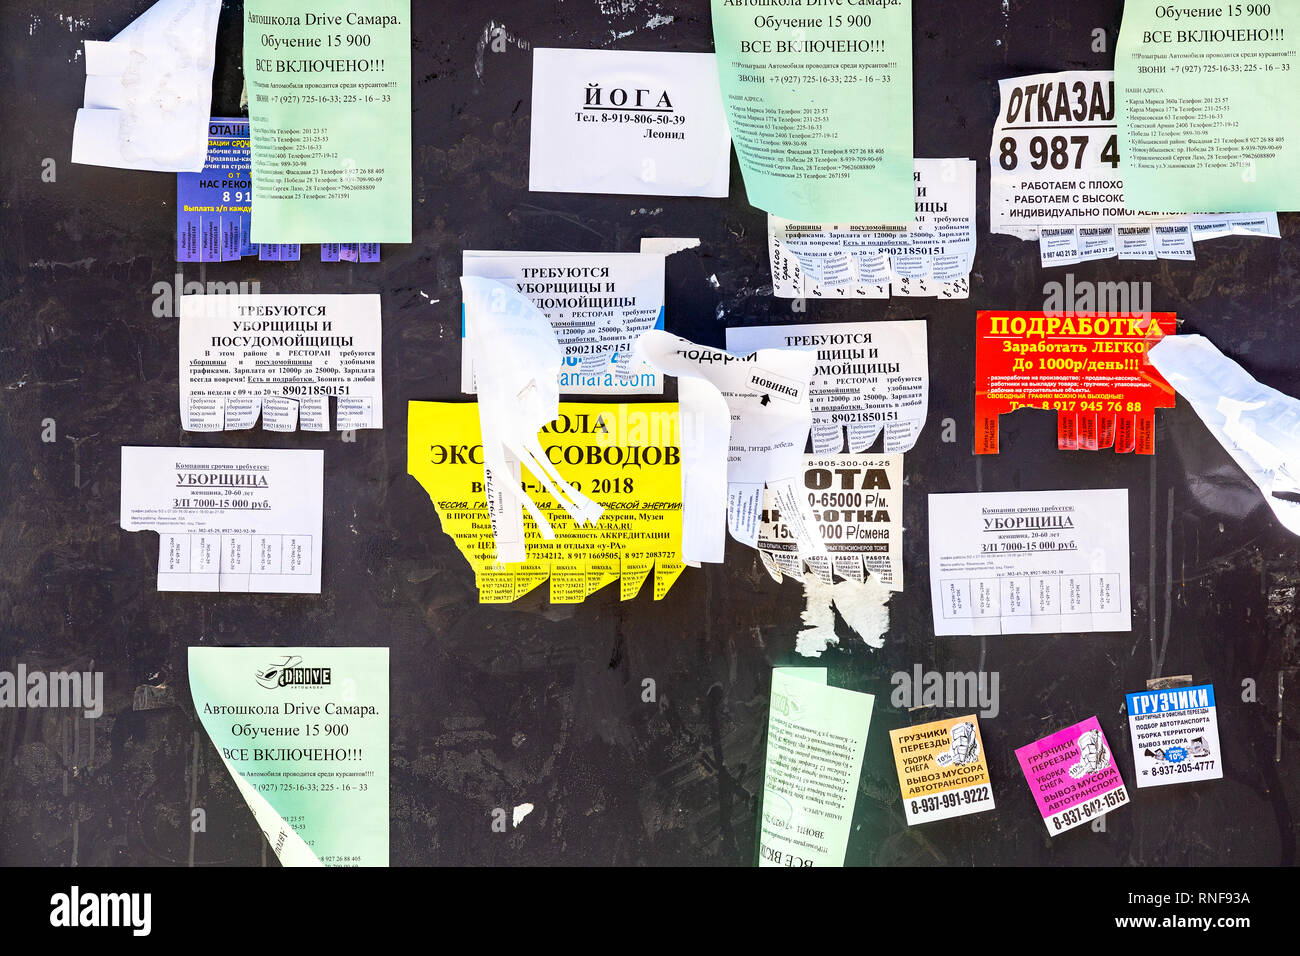 Samara, Russia - May 5, 2018: Live bulletin board. Paper ads on the wall. Shreds of various ads on an old wooden wall - Stock Image